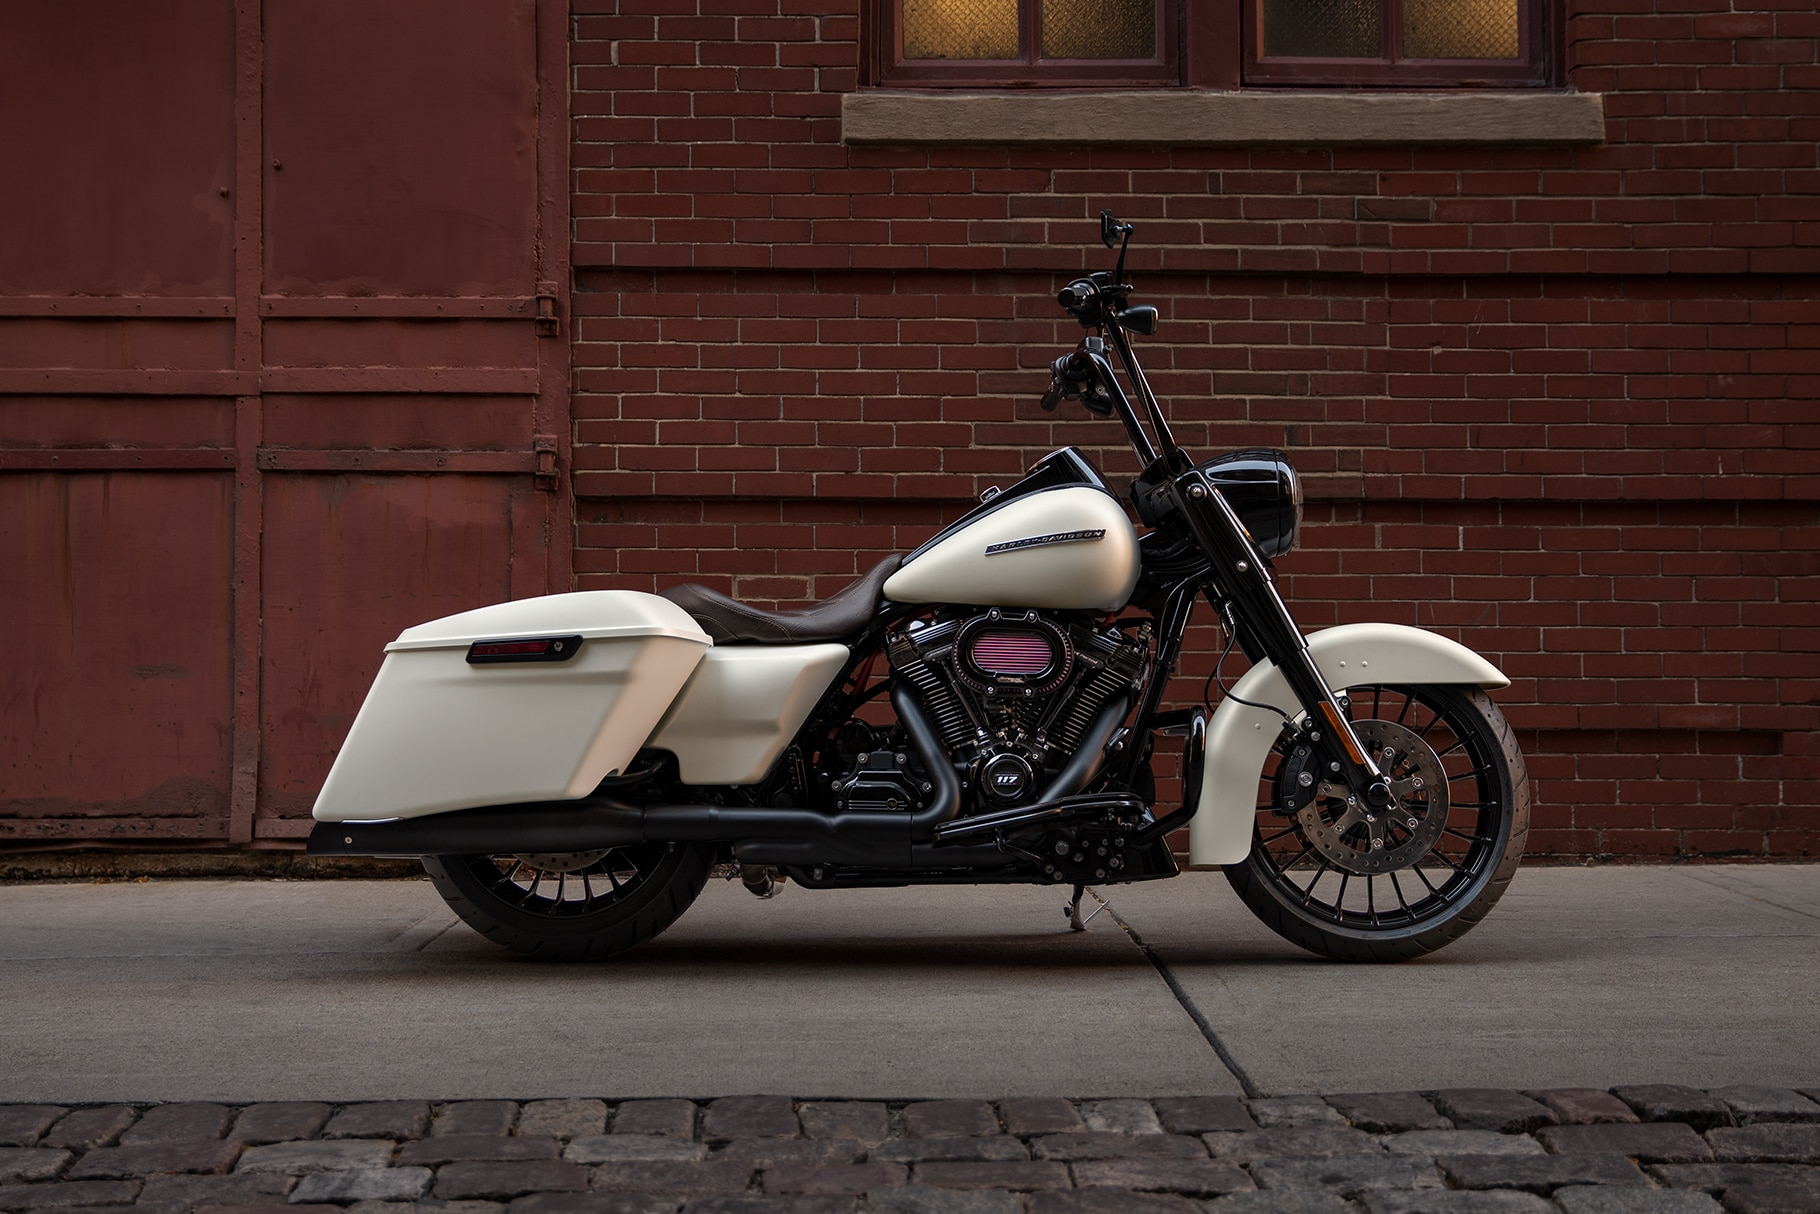 2019 Road King Special Motorcycle | Harley-Davidson USA